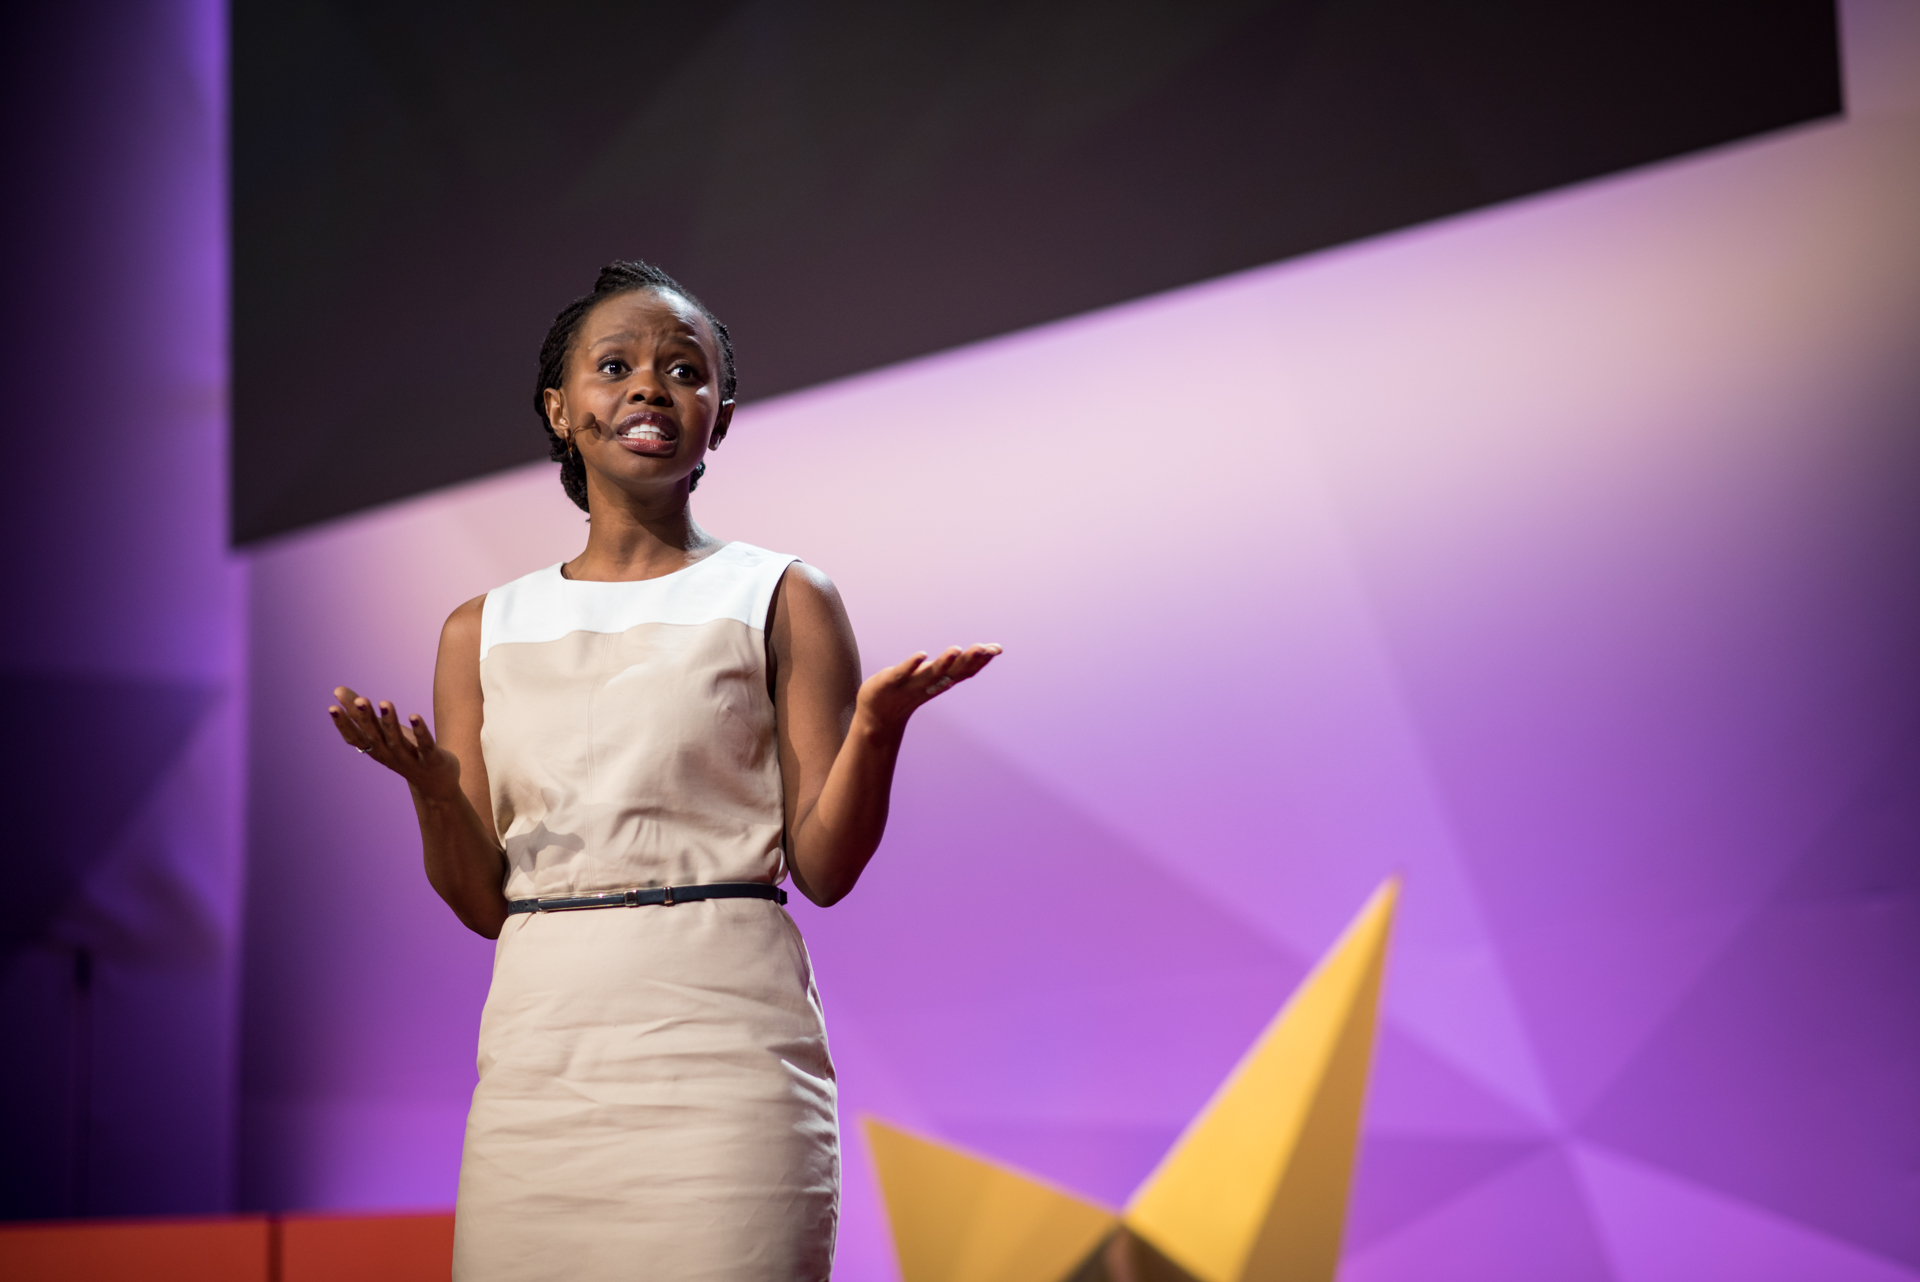 Charity Wayua speaks at TED@IBM salon - Spark, November 16, 2016, San Francisco Jazz, San Francisco, California. Photo: Russell Edwards/TED